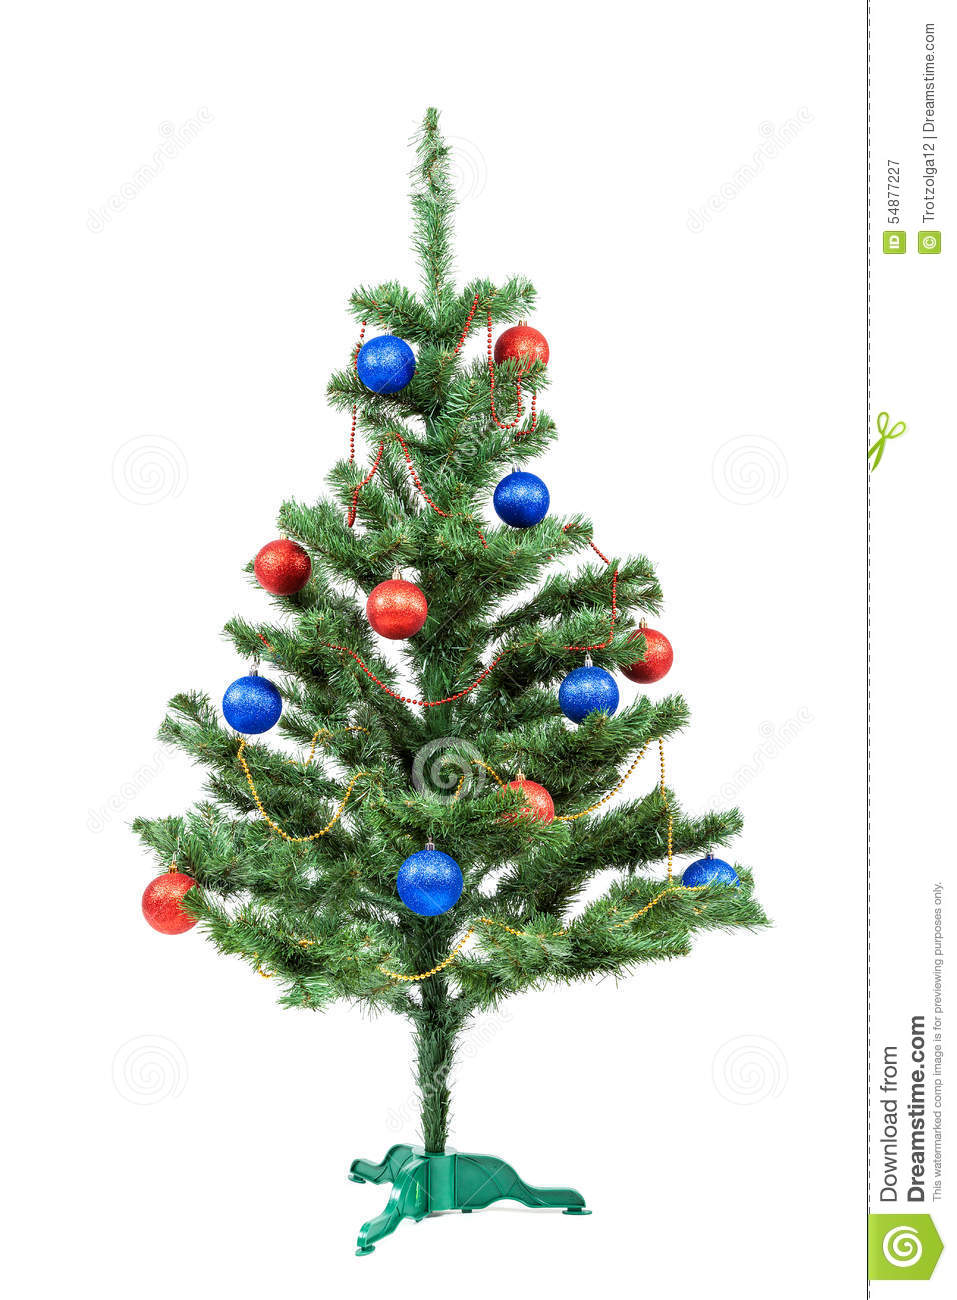 download christmas tree decorated red and blue balls stock image image of ball